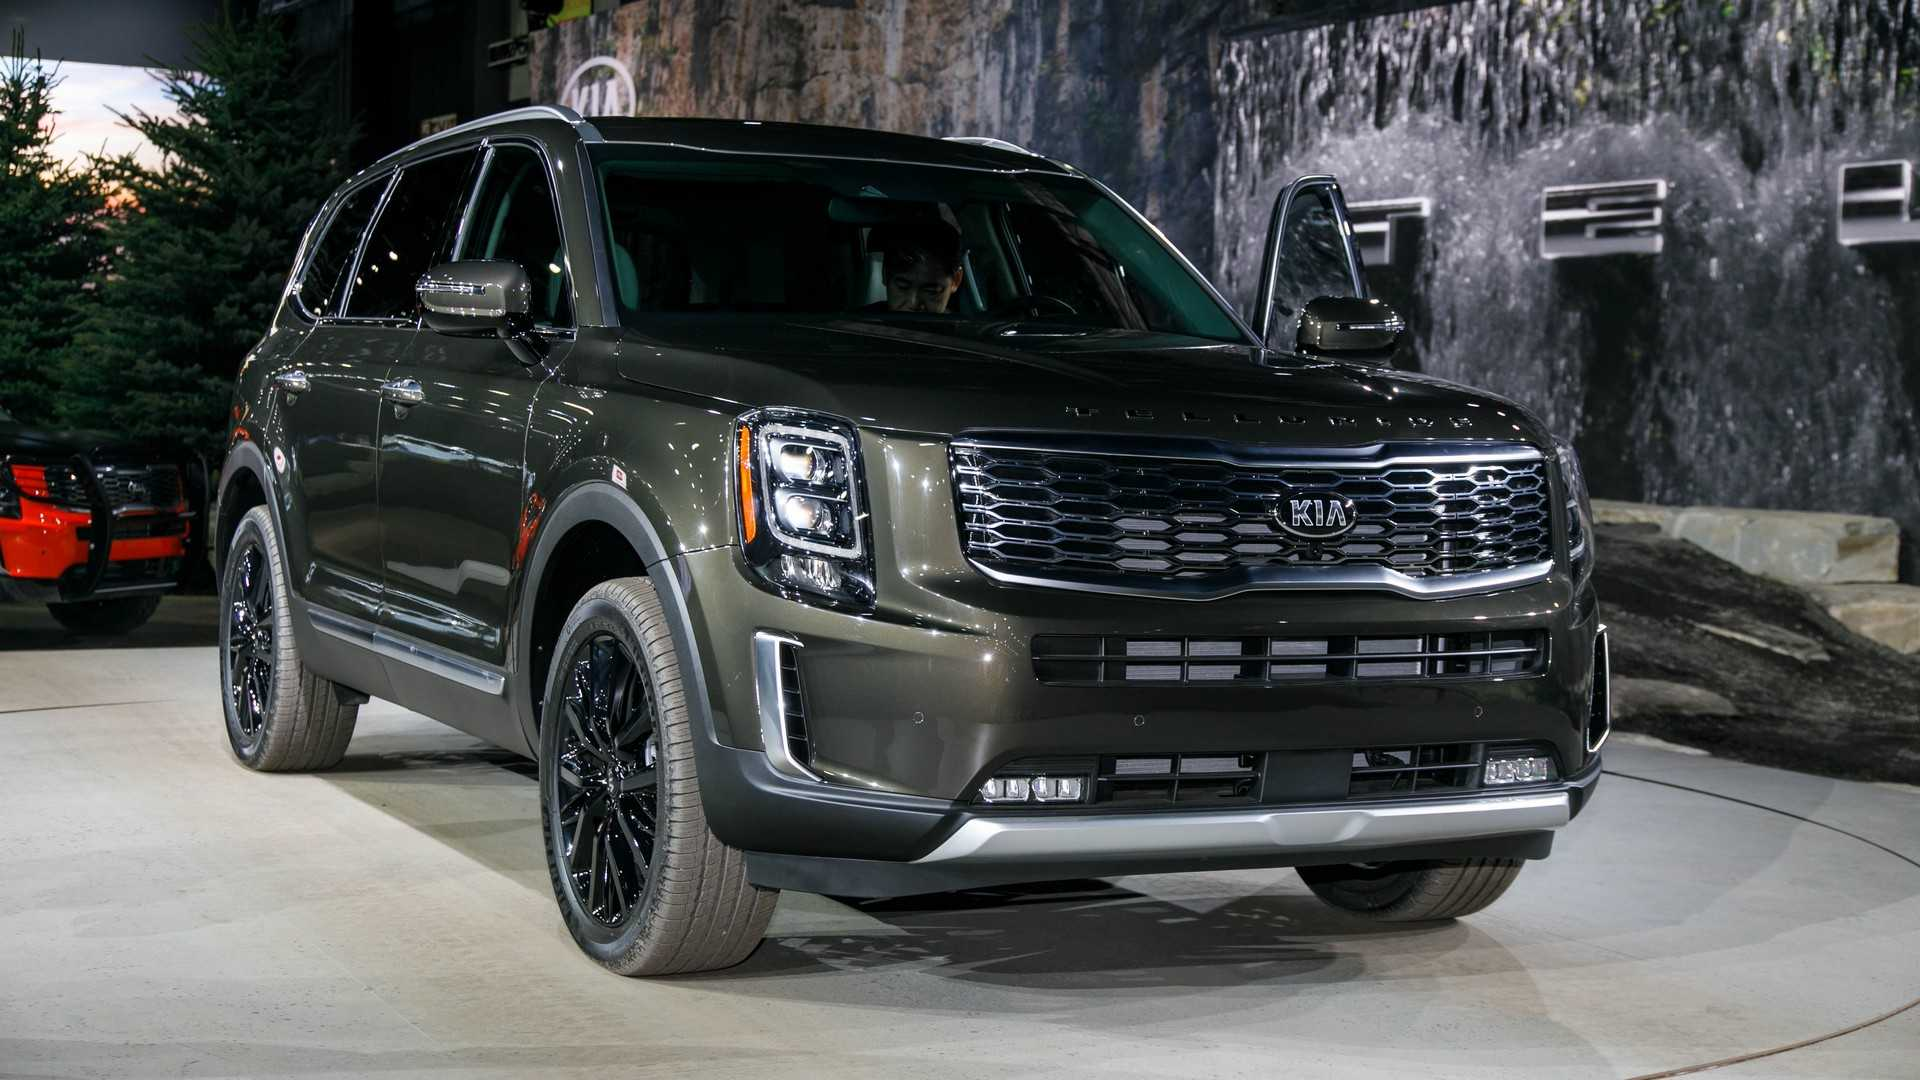 57 Gallery of 2020 Kia Telluride Trim Levels Pictures for 2020 Kia Telluride Trim Levels